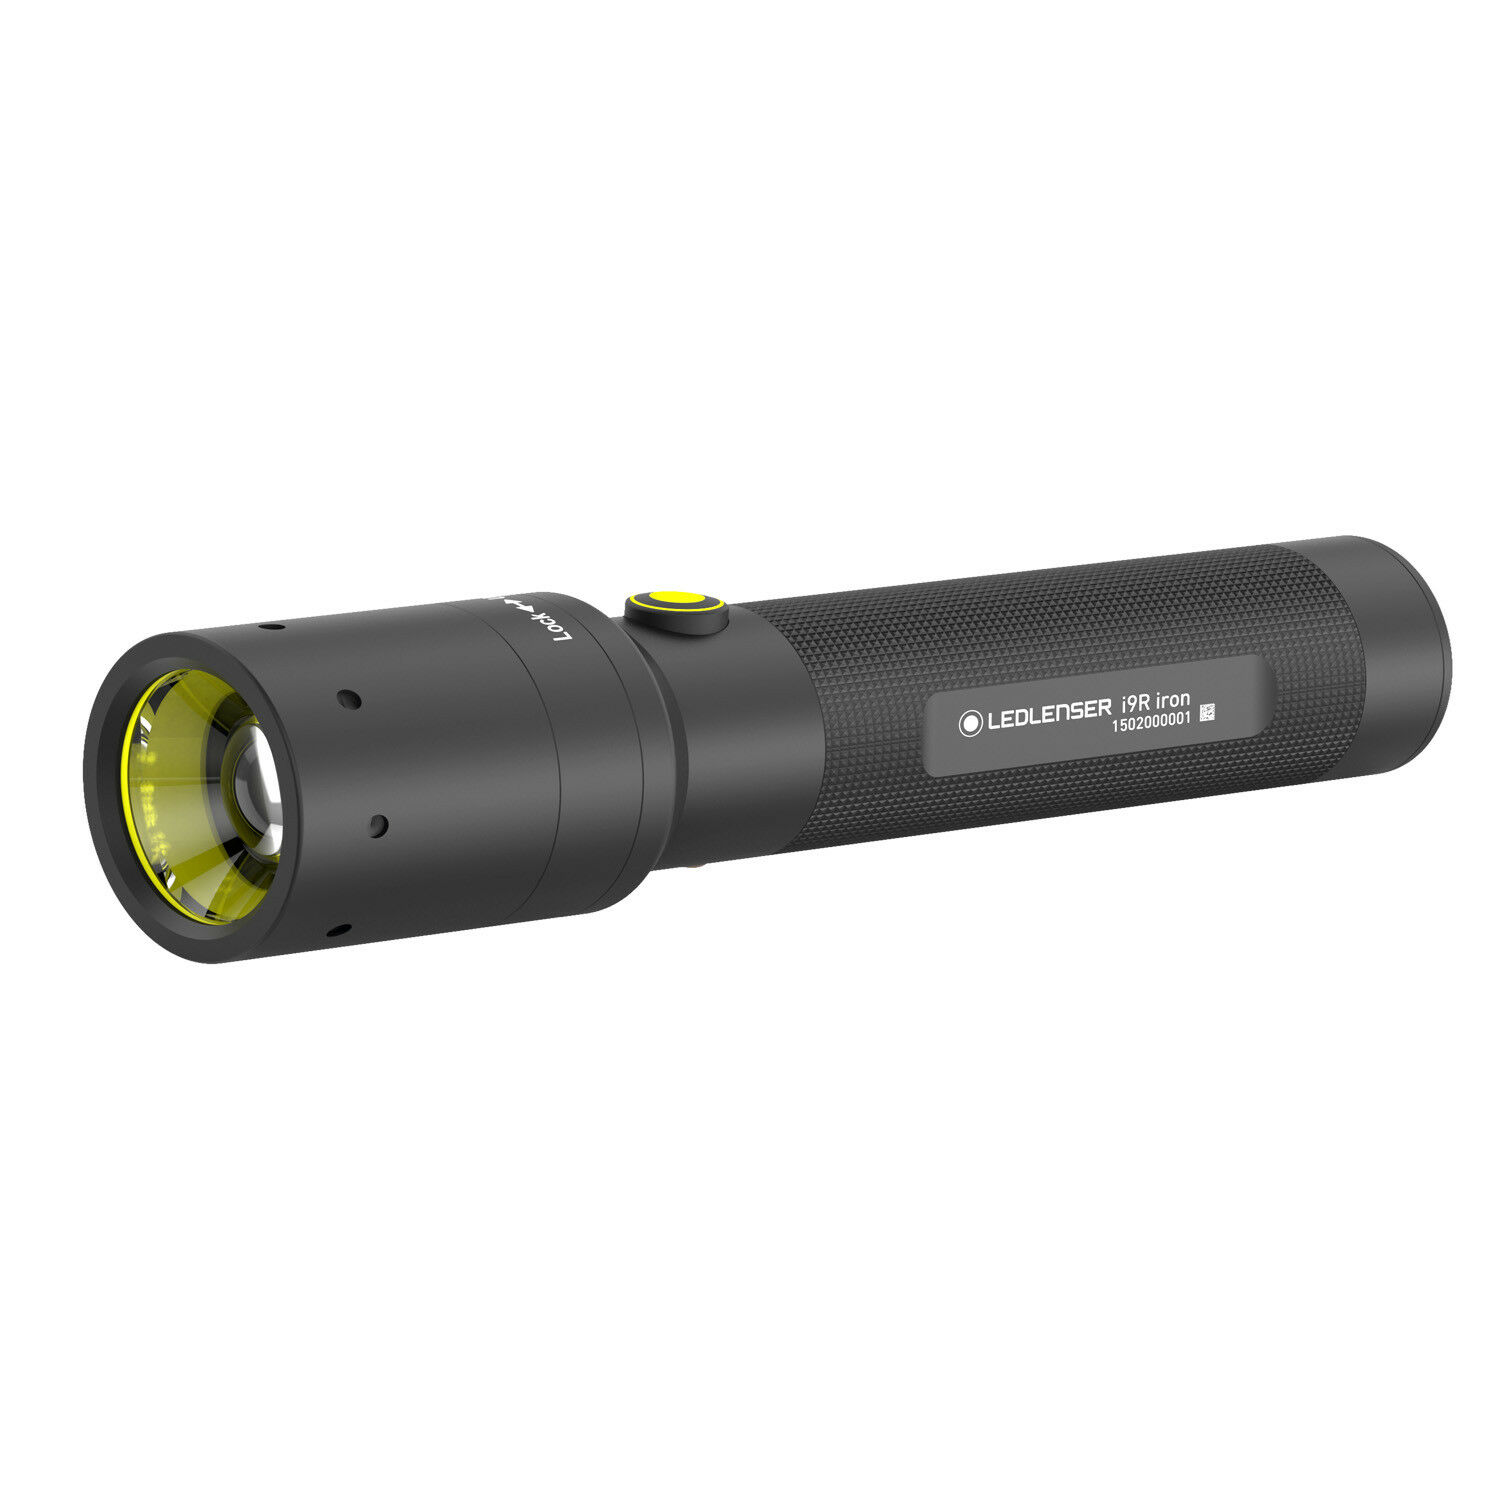 LED Lenser i9R-iron Rechargeable Flashlight Torch 700 Lumens